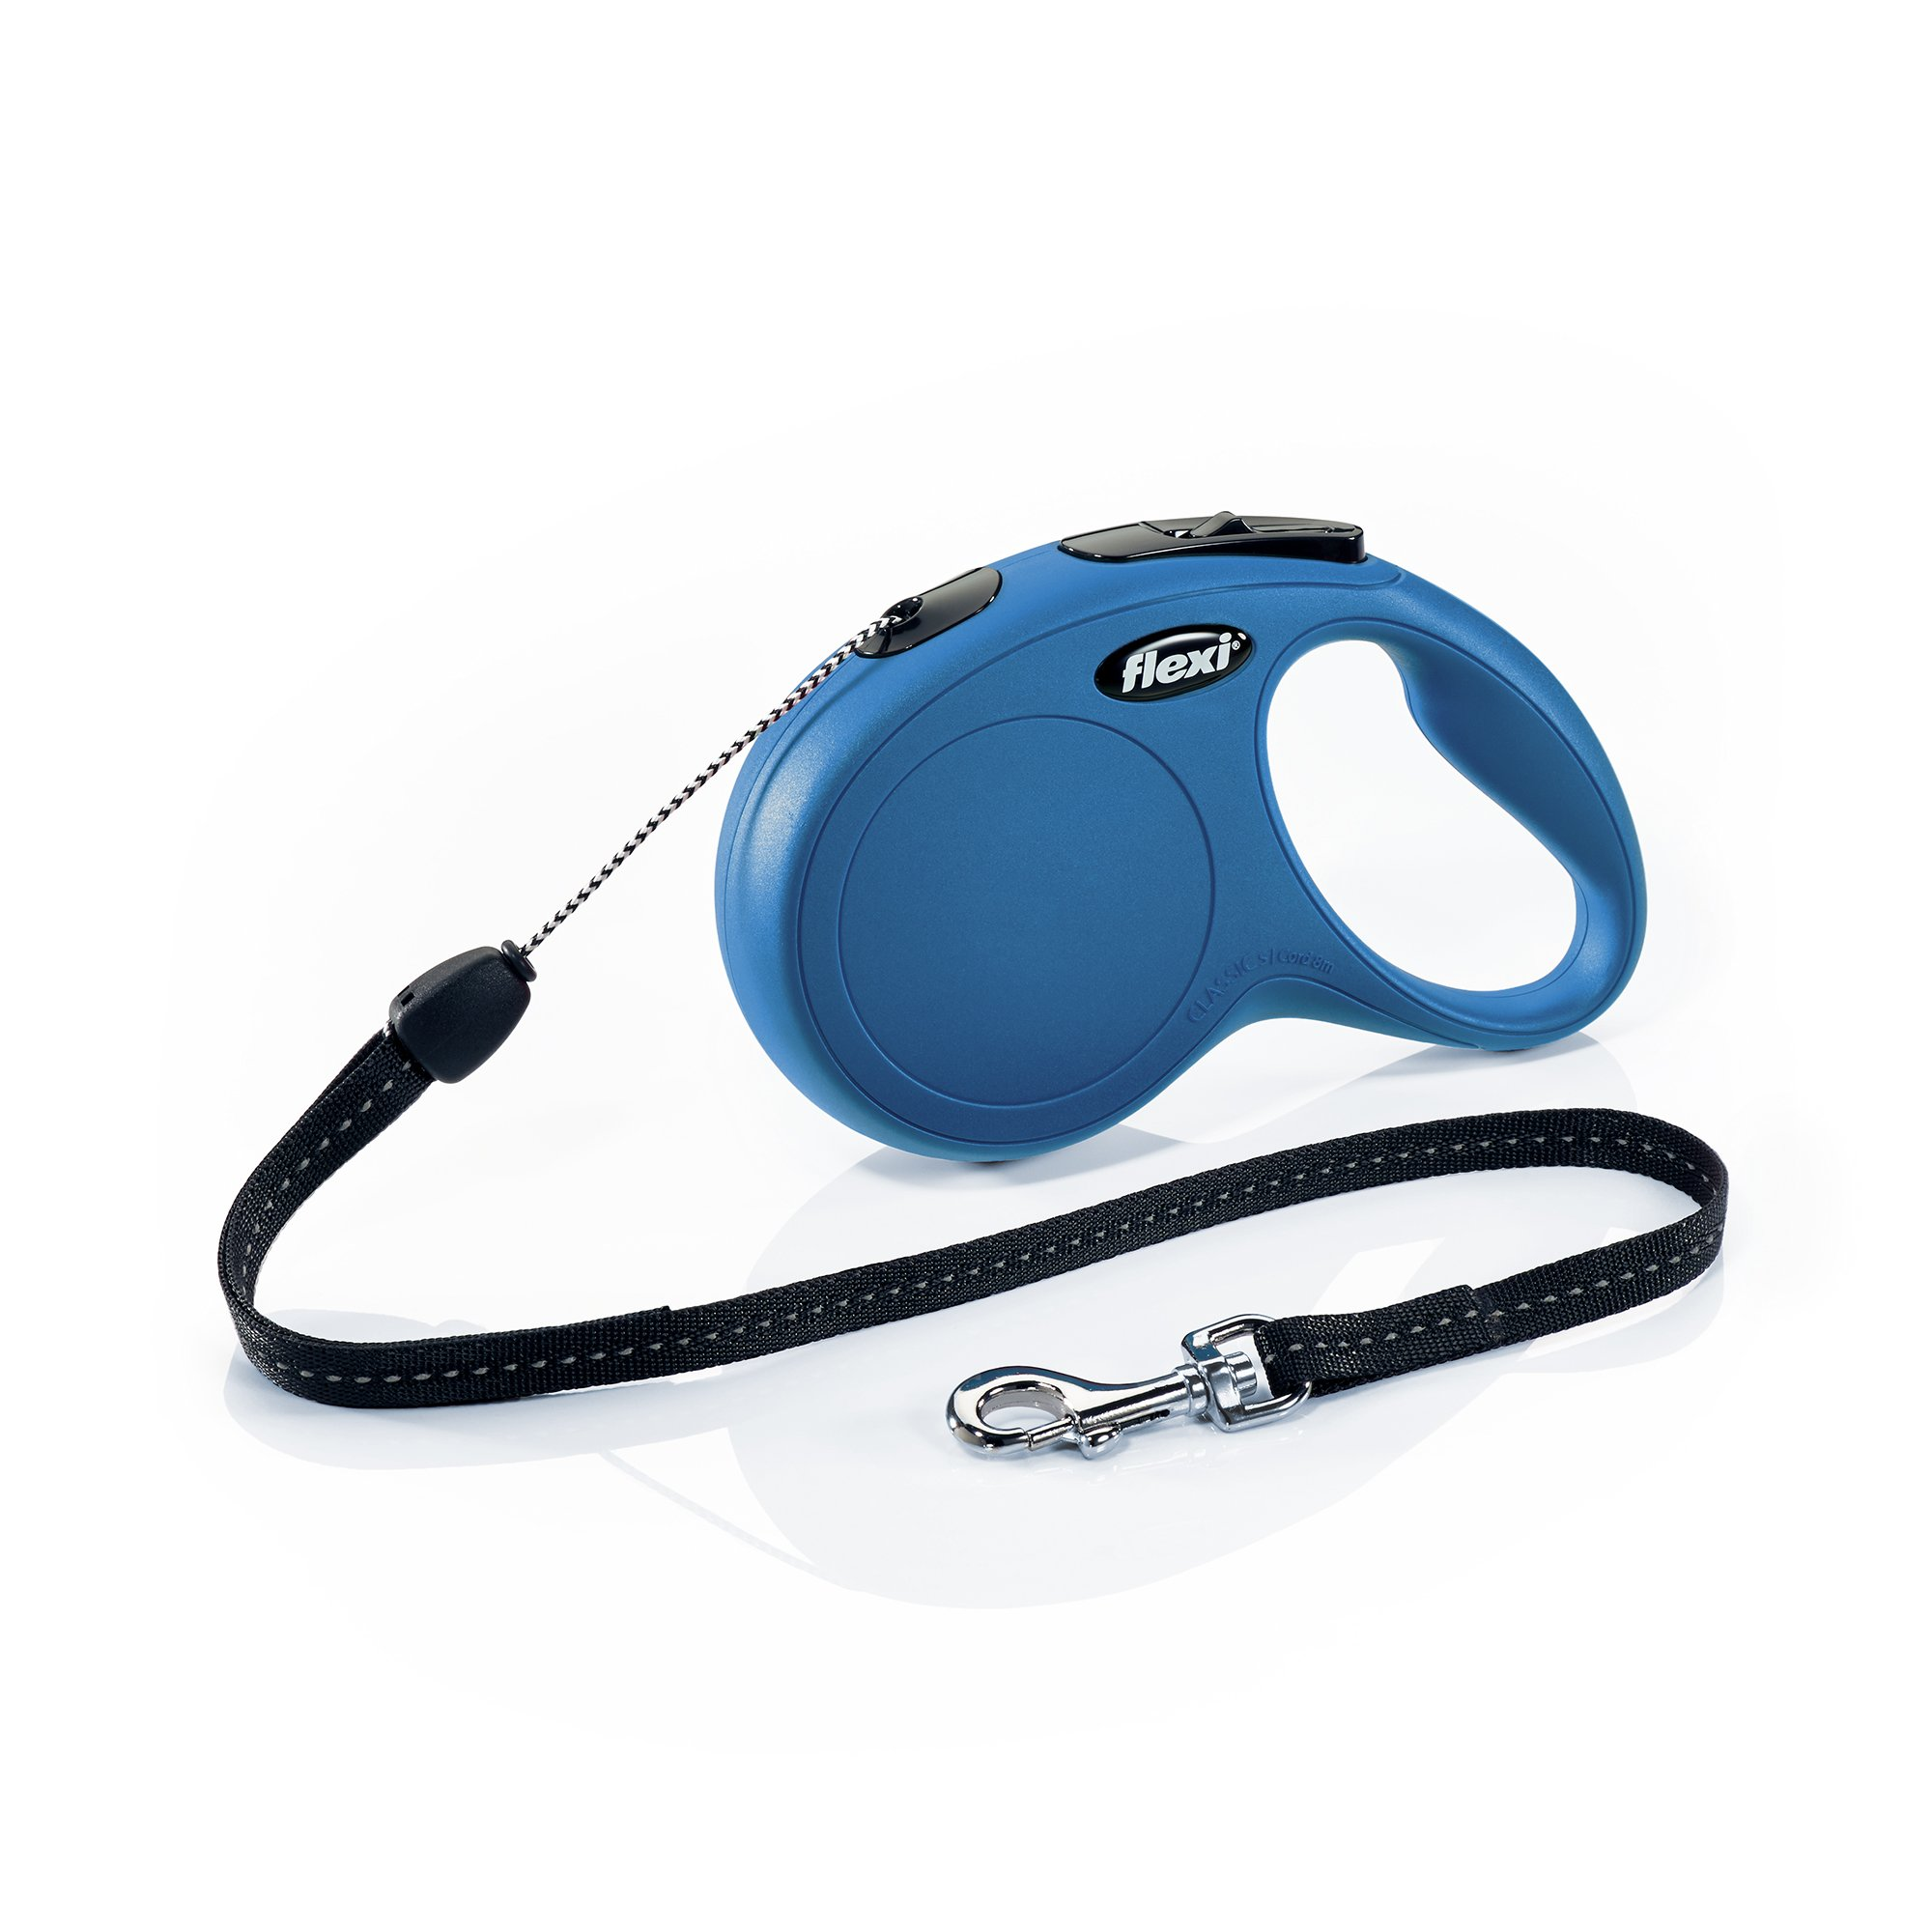 Flexi New Classic Retractable Dog Leash (Cord), 26 ft, Small, Blue by Flexi